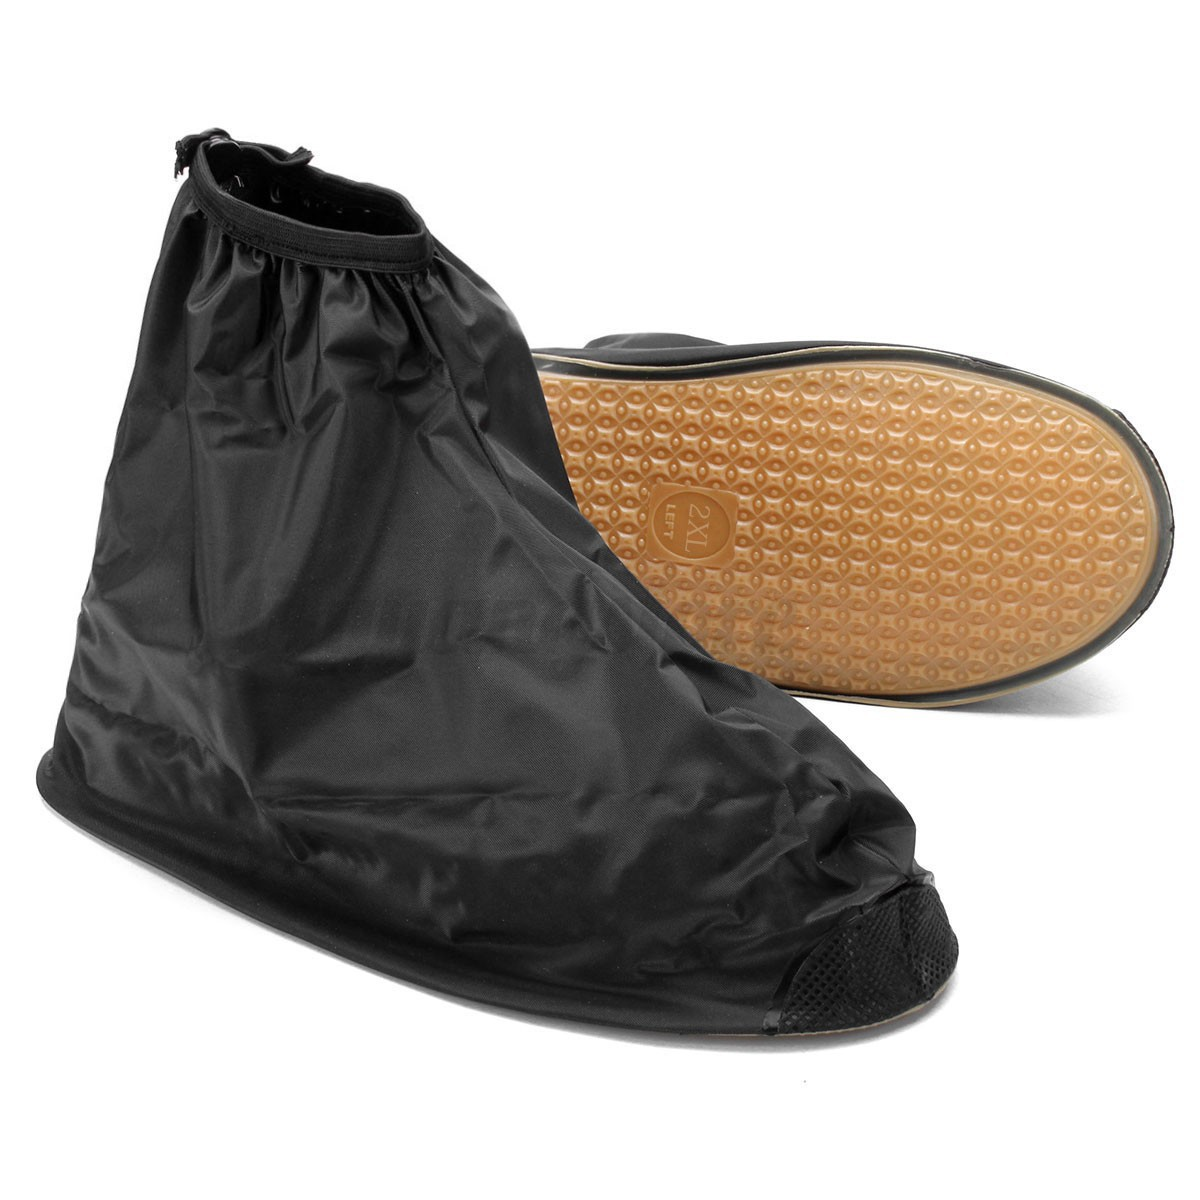 new reusable shoe covers waterproof shoes overshoes